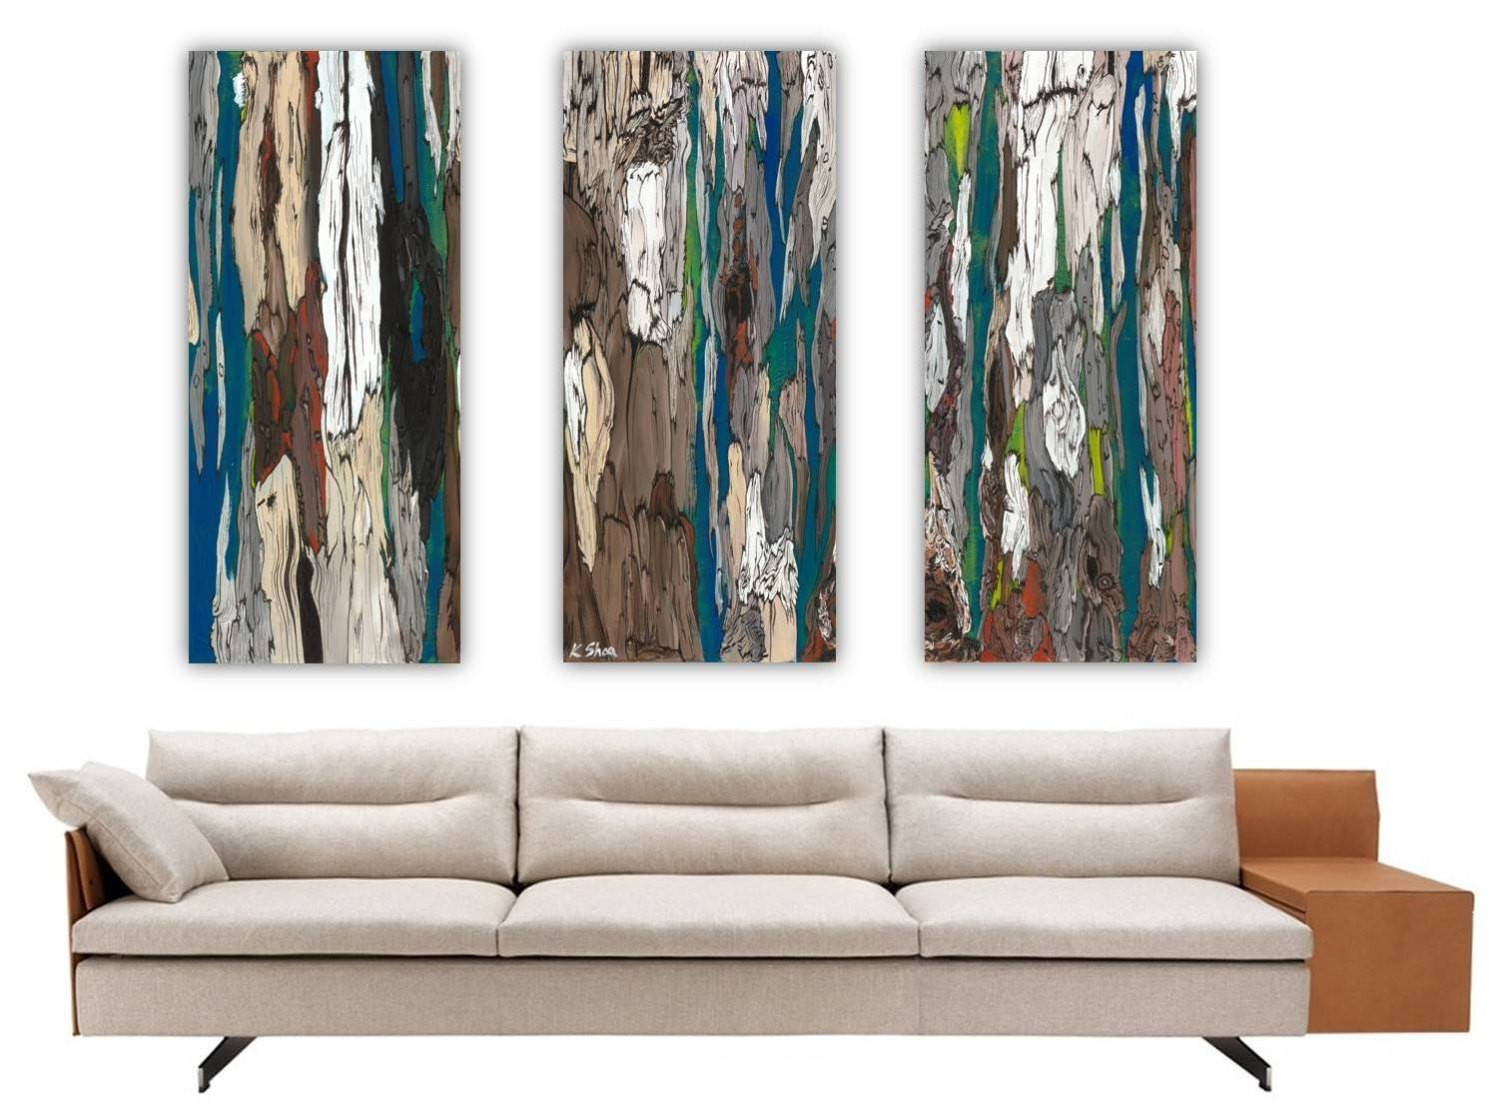 Tall Wall Art Cool As Canvas Wall Art For Wooden Wall Art With Regard To Most Current Tall Wall Art Decor (View 18 of 20)